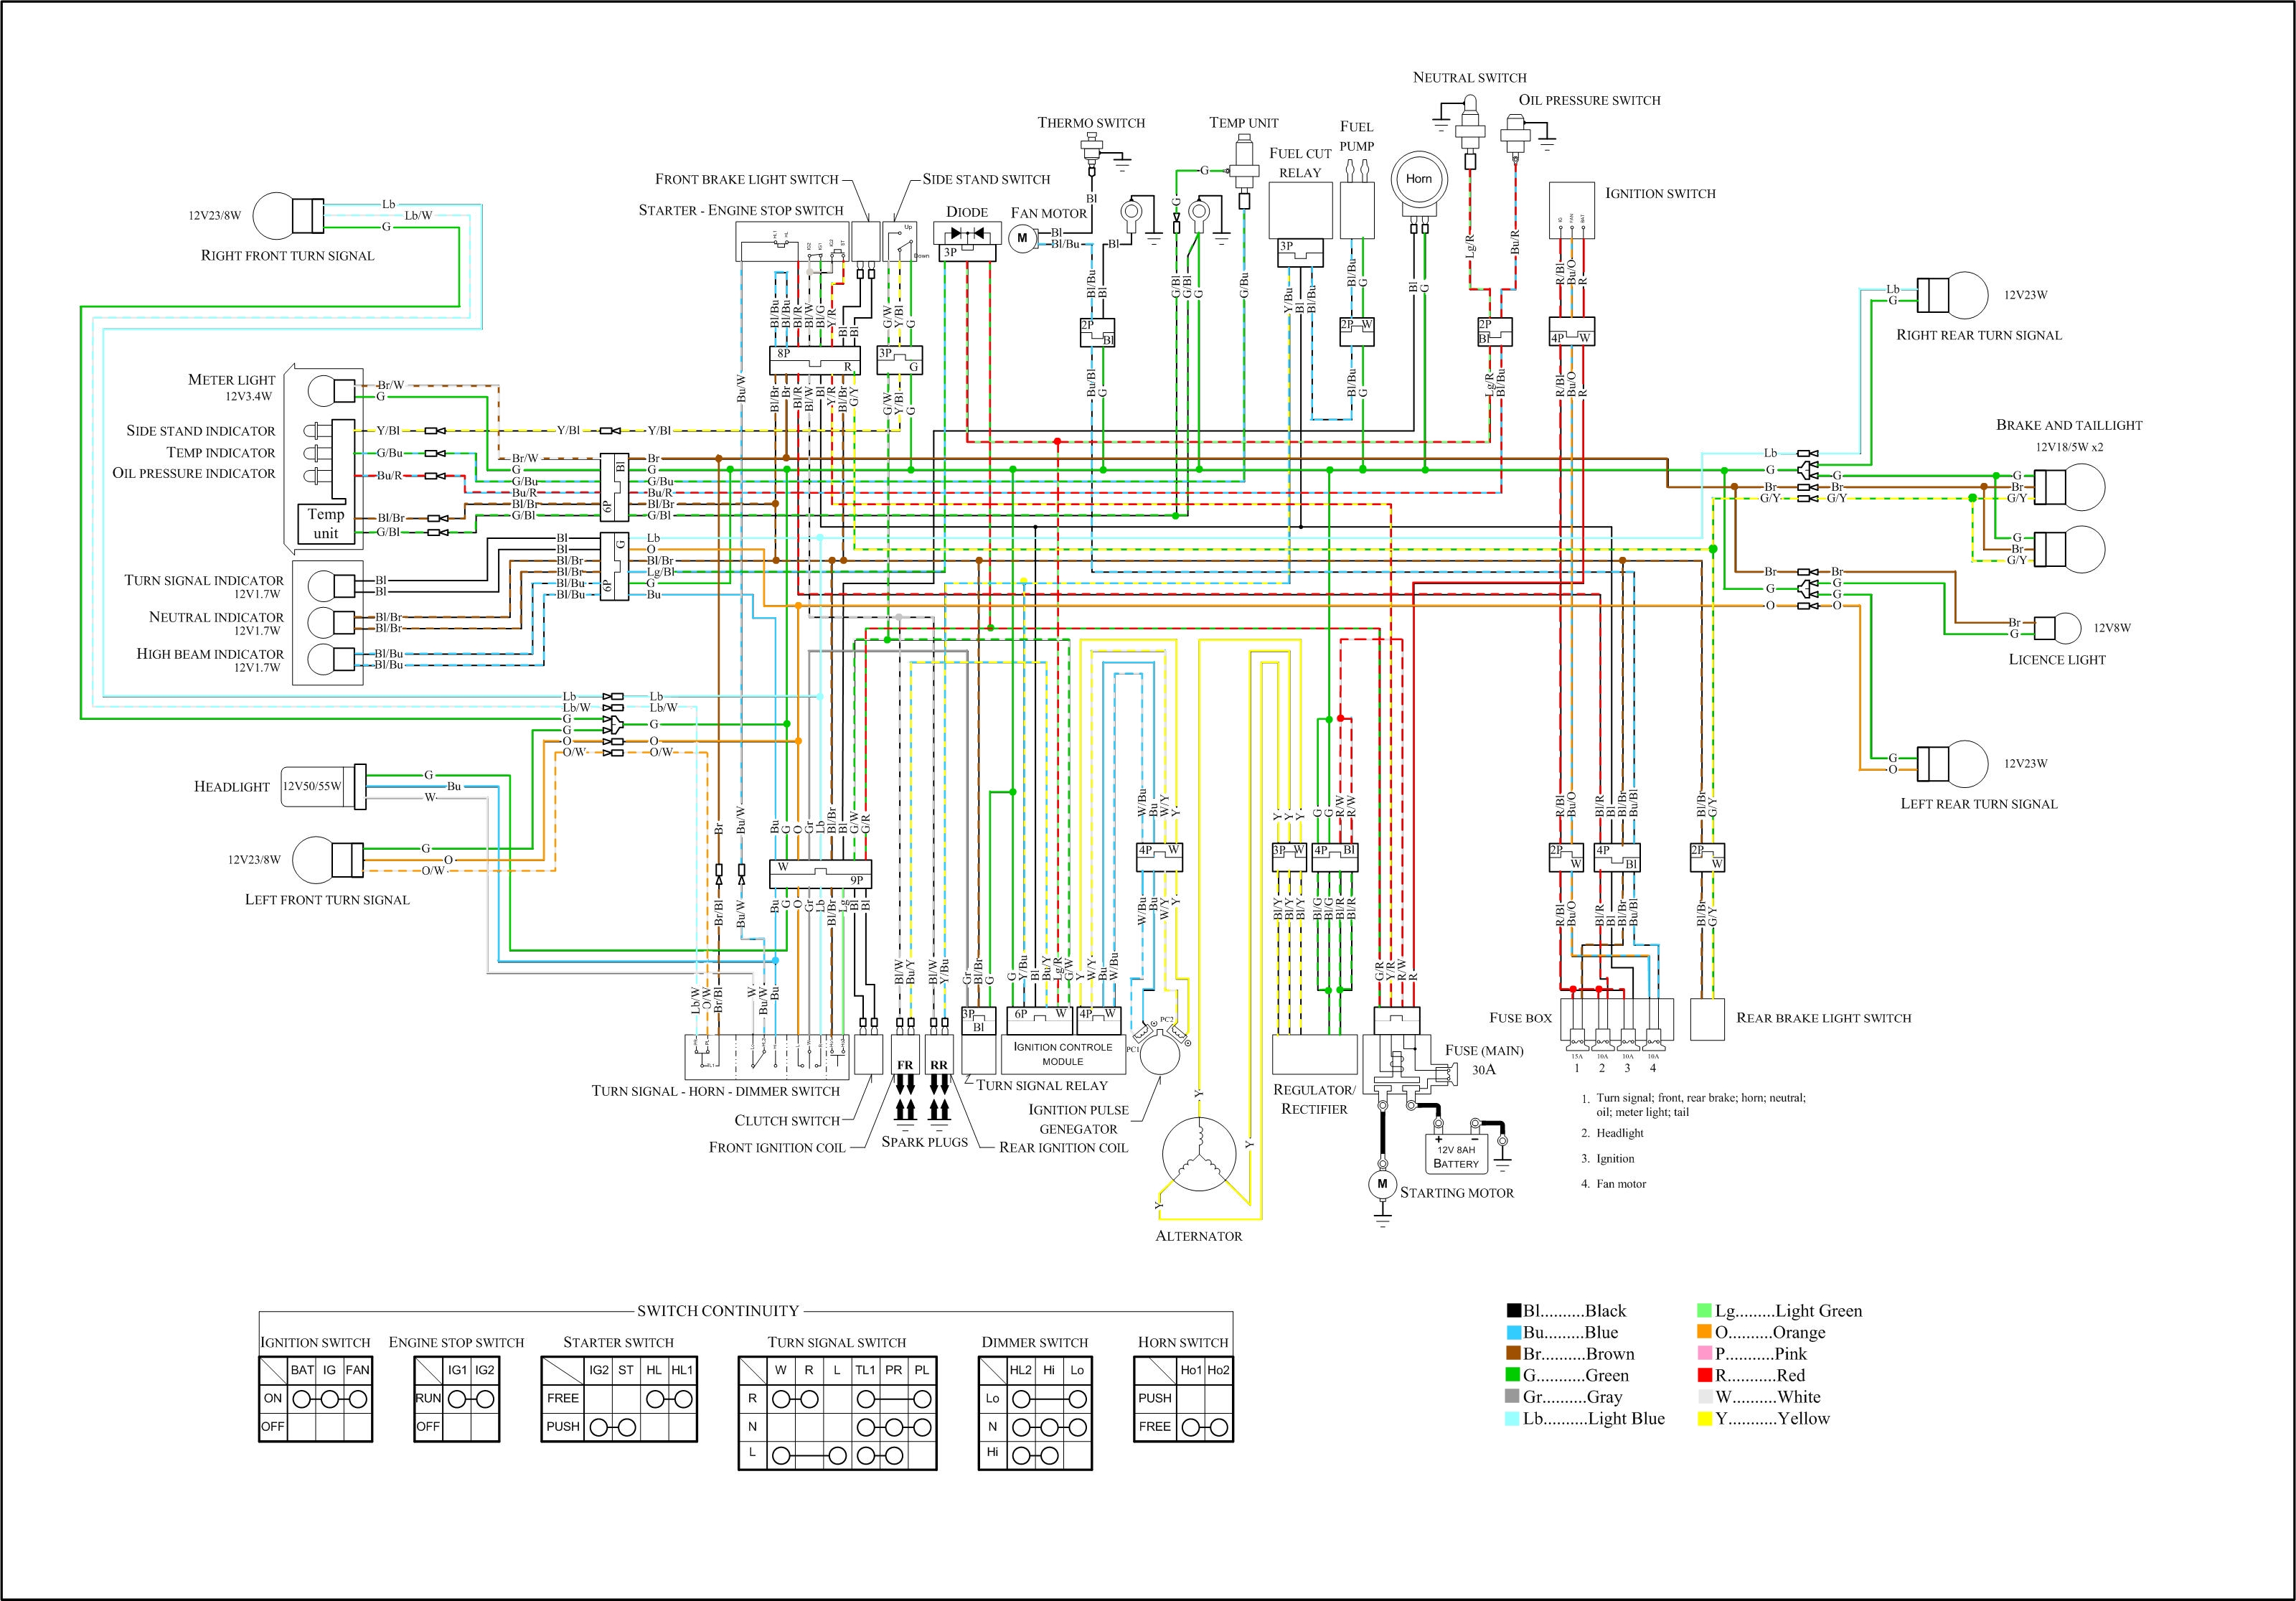 VT600wiring motorcycle wiring diagrams Electrical Wiring Diagrams for Motorcycles at bayanpartner.co